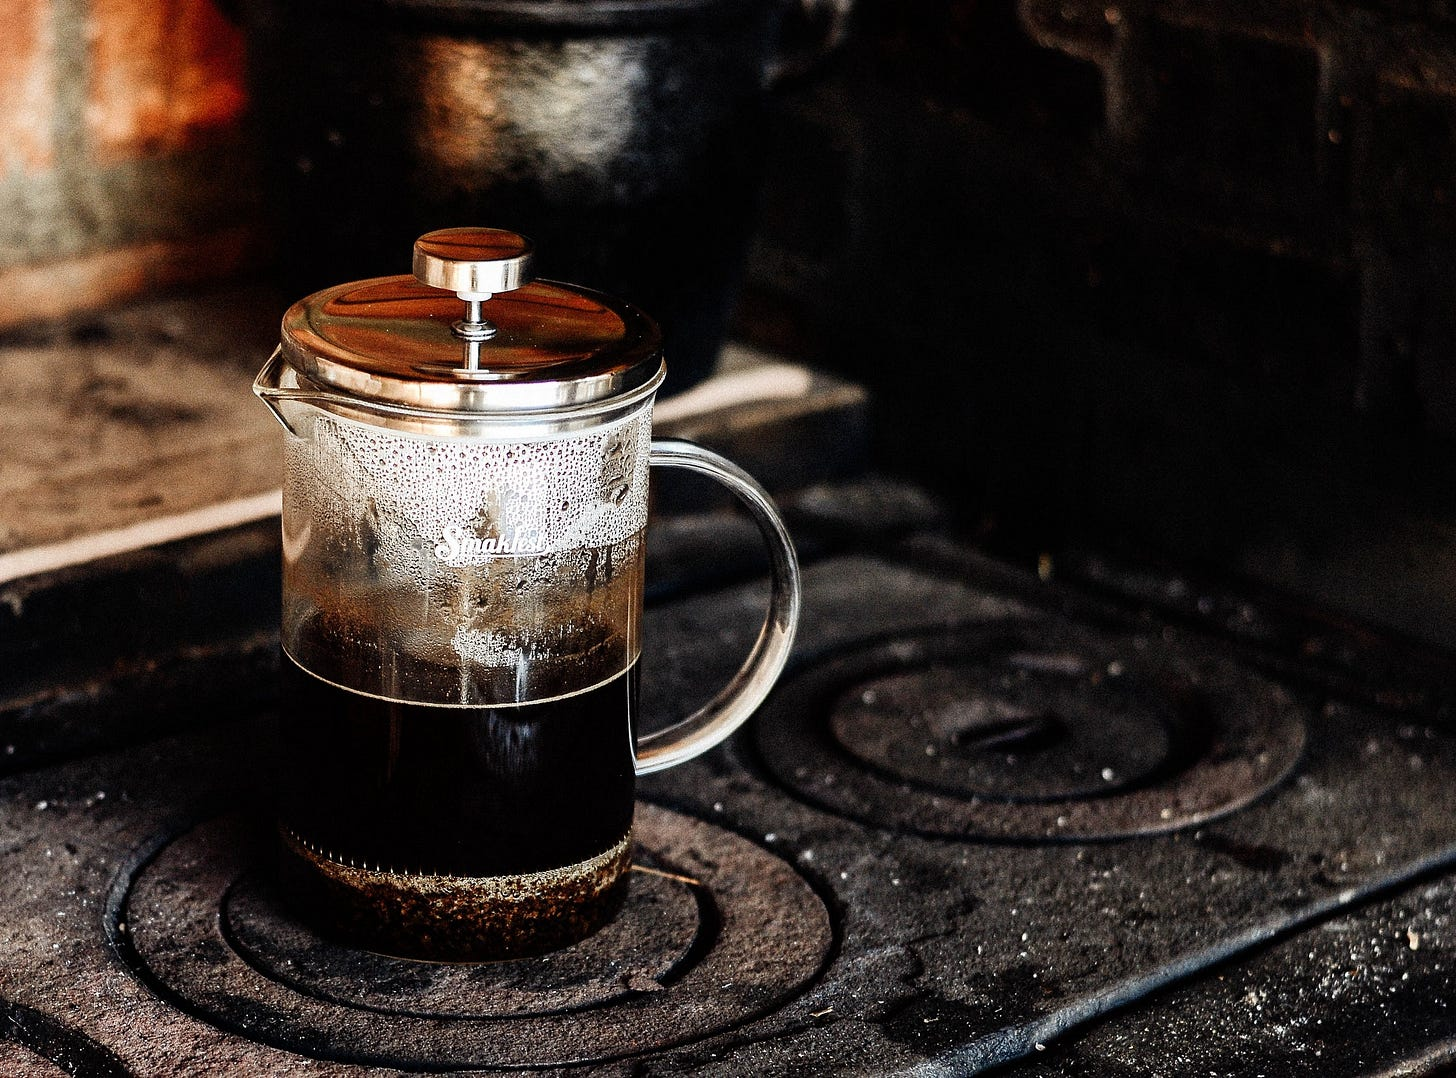 Image of a cafetiere on a stove for article by Larry G. Maguire